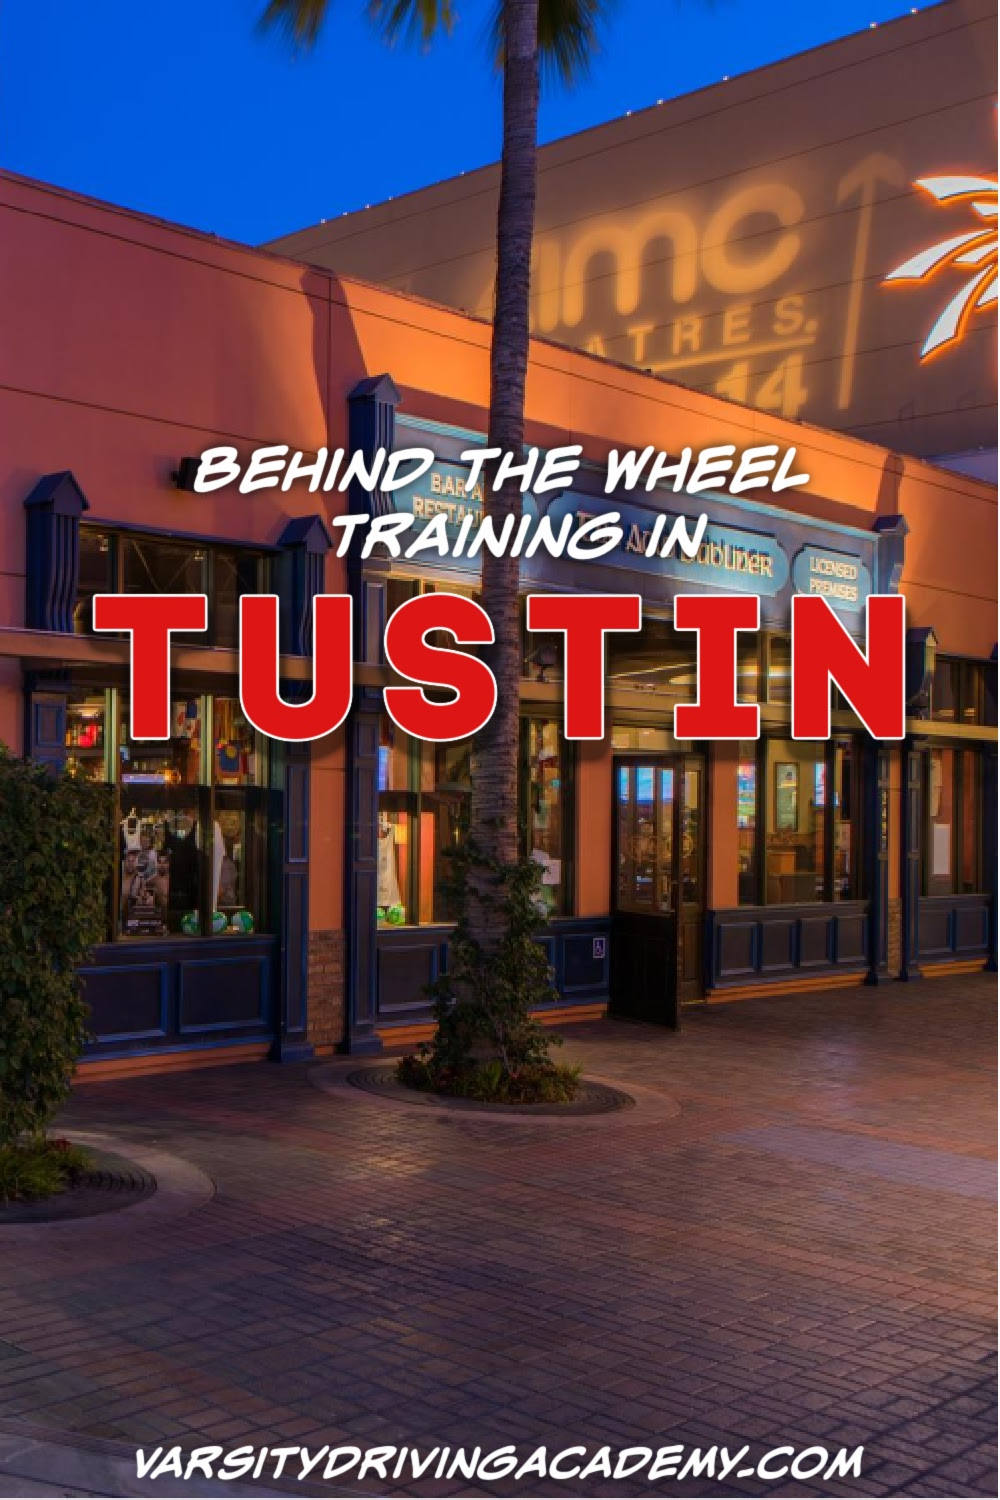 Varsity Driving Academy is the #1 Tustin behind the wheel driving school providing driving lessons with trained instructors so you can pass your Tustin DMV test the first time!